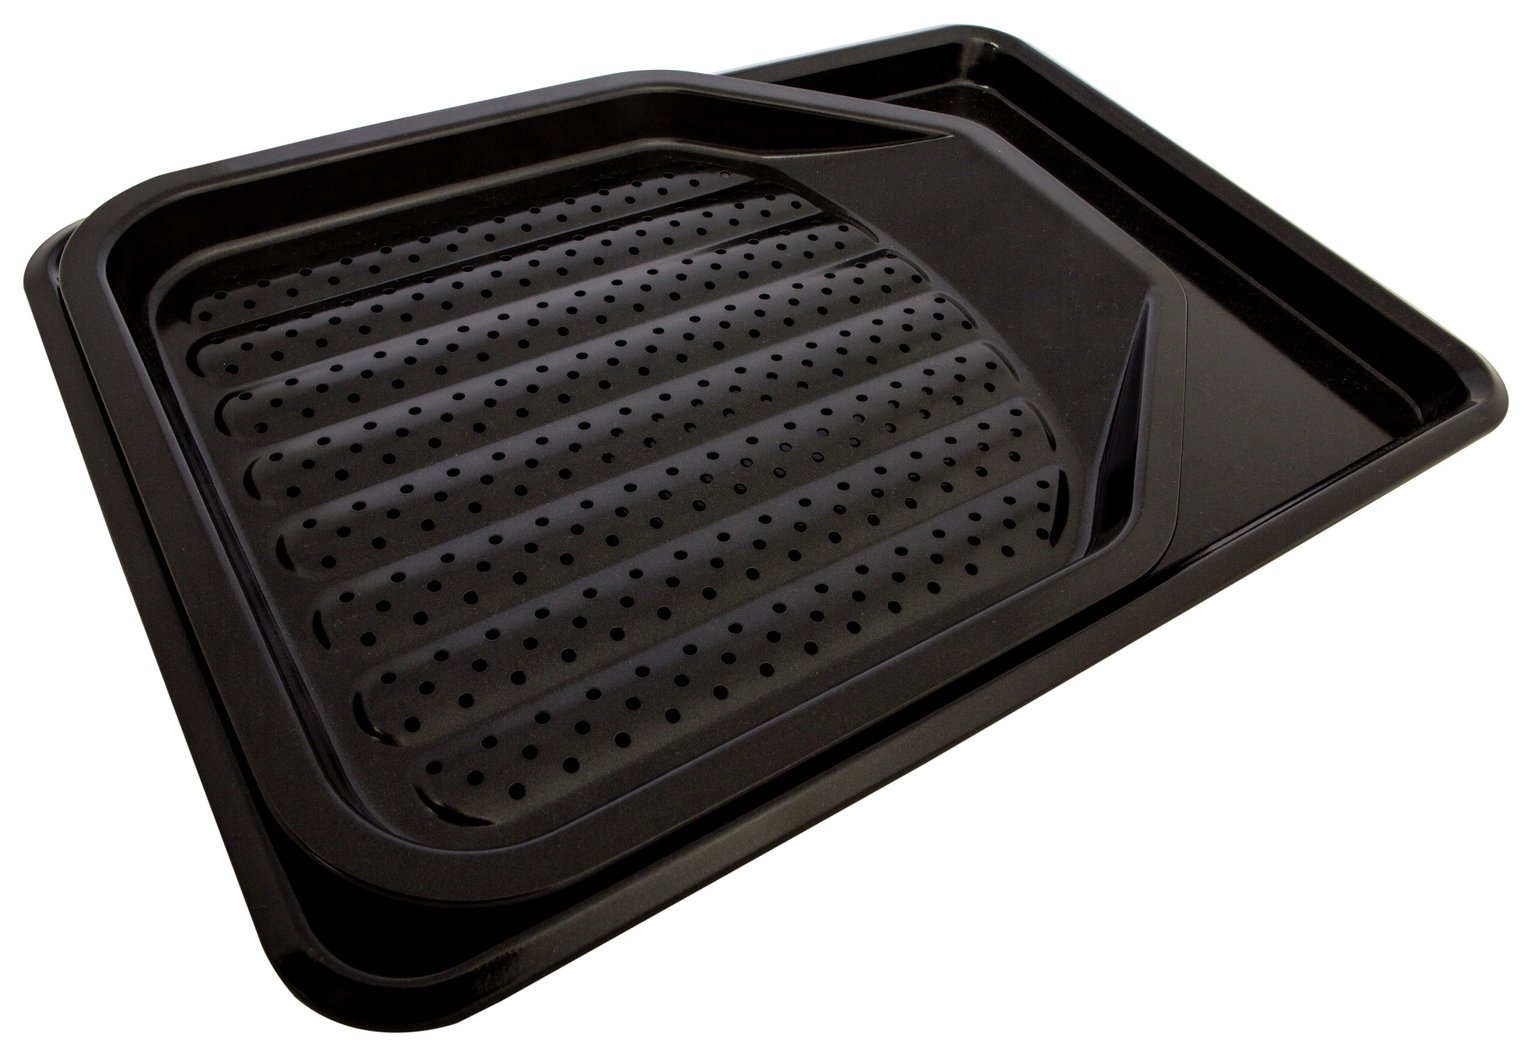 Sainsbury's Home 2 Piece Oven Tray and Crisper Set